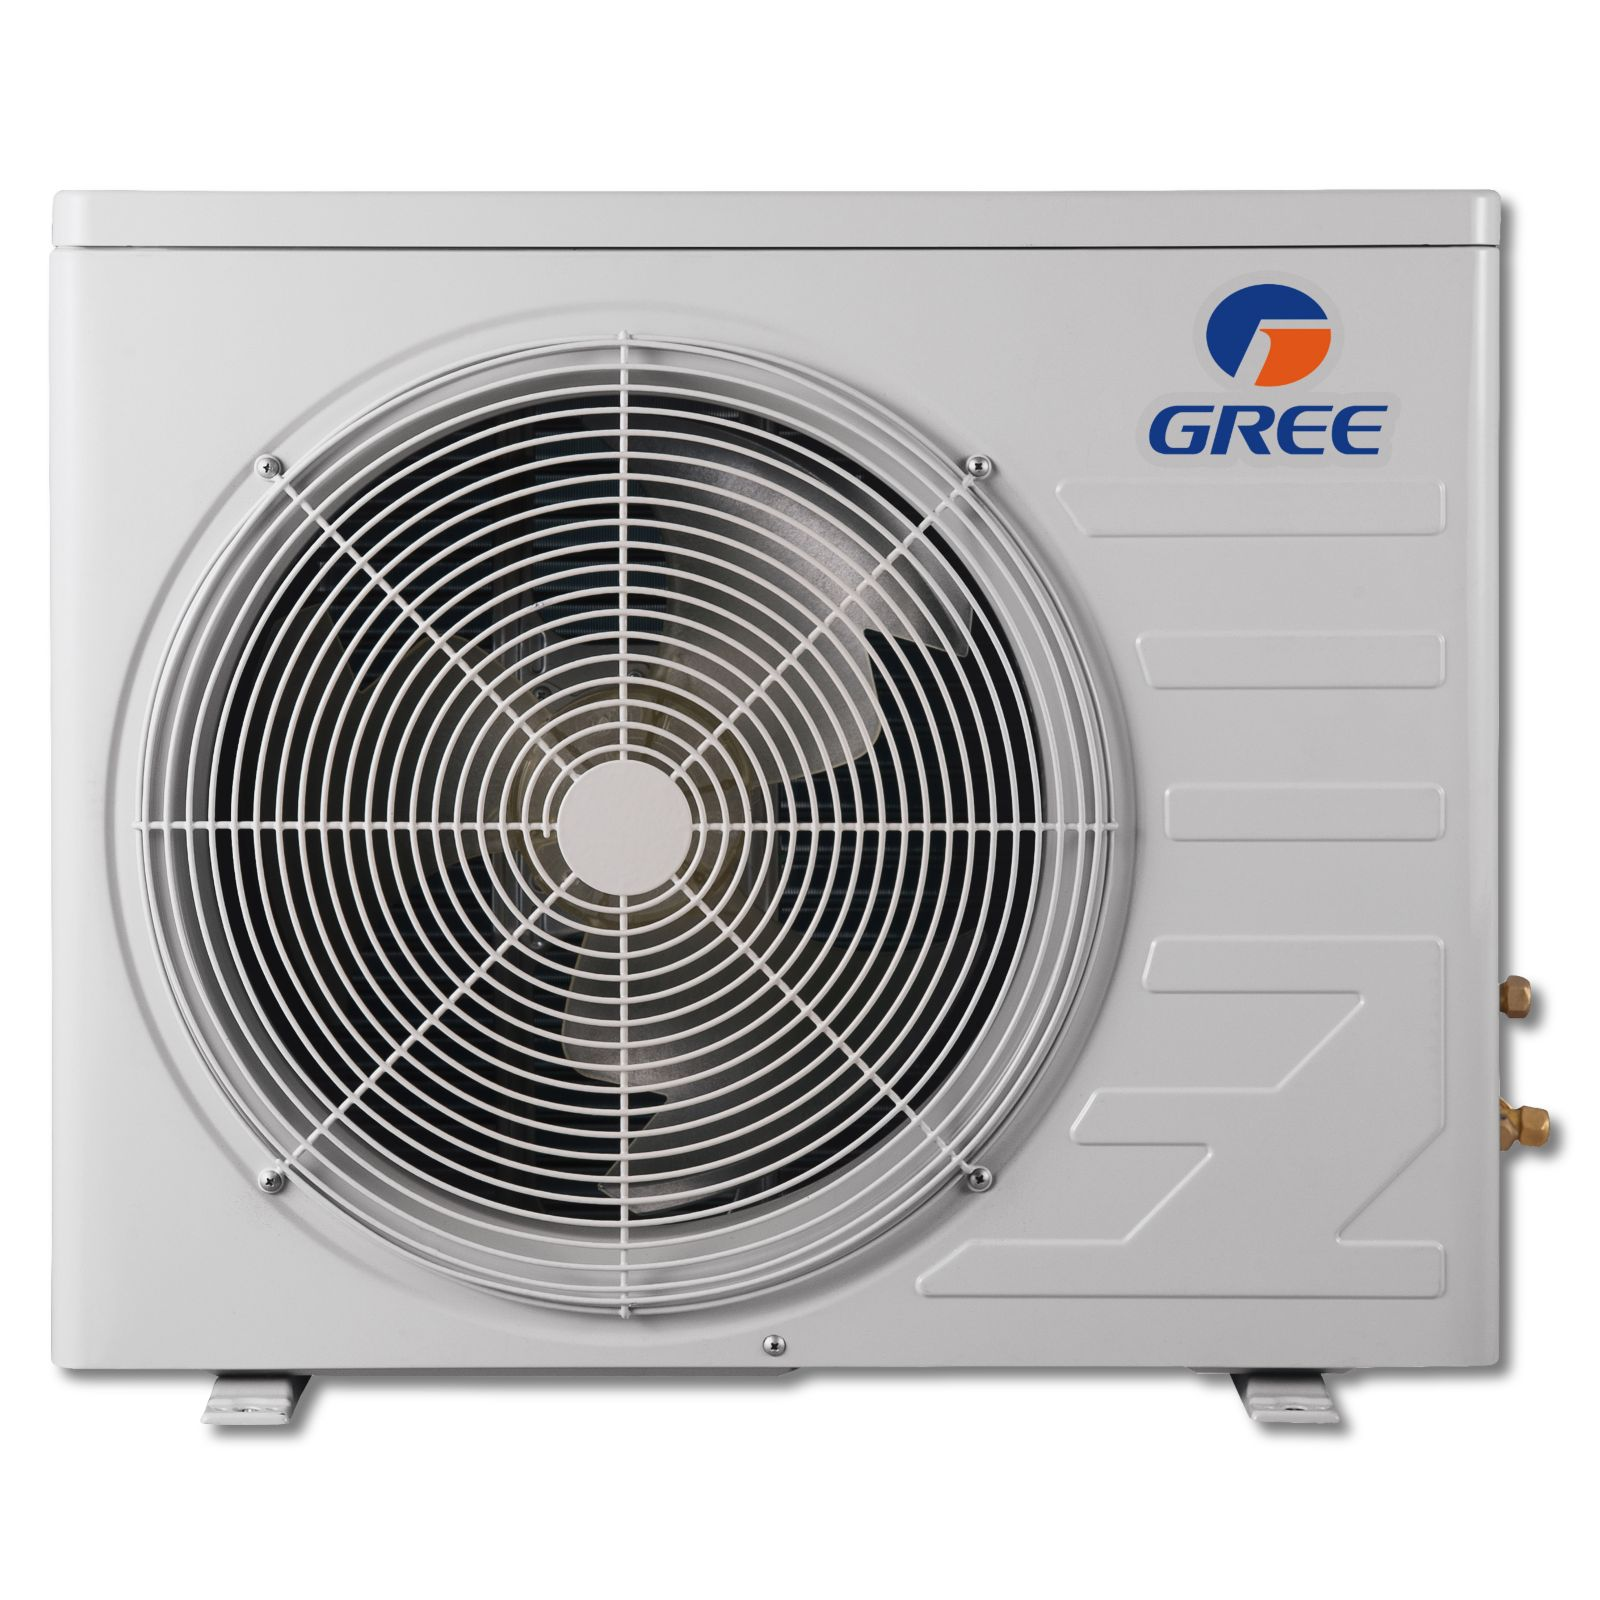 GREE RIO12HP230V1AO - RIO Ductless Outdoor Unit 208-230/60 High Efficiency DC Inverter Technology 16 SEER, 10.3 EER, 8.5 HSPF